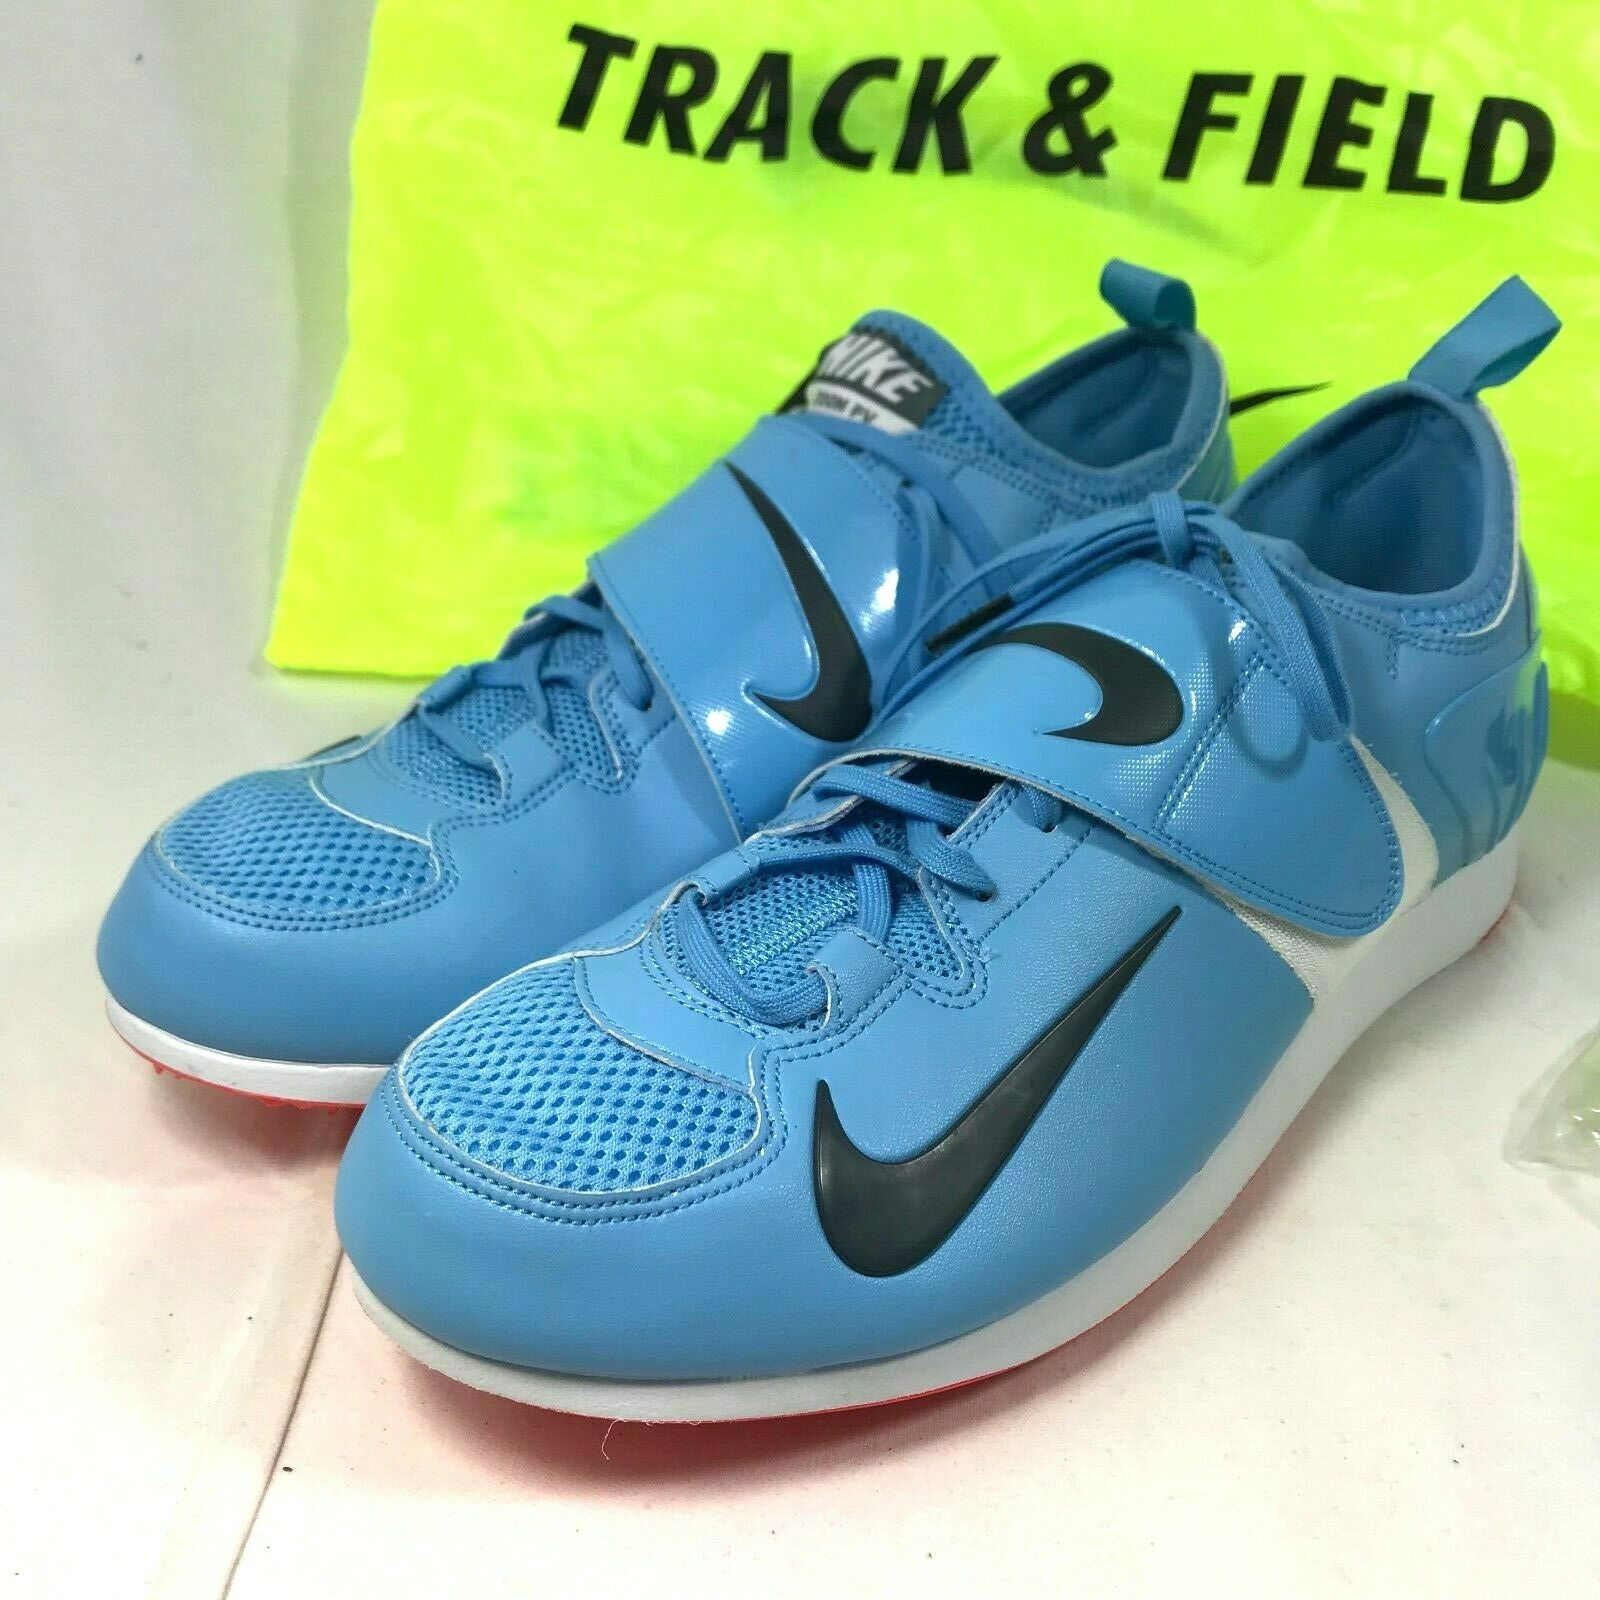 Nike Zoom Pro PV Pole Vaulting Track shoes Size 12 UNC bluee White 317404-446